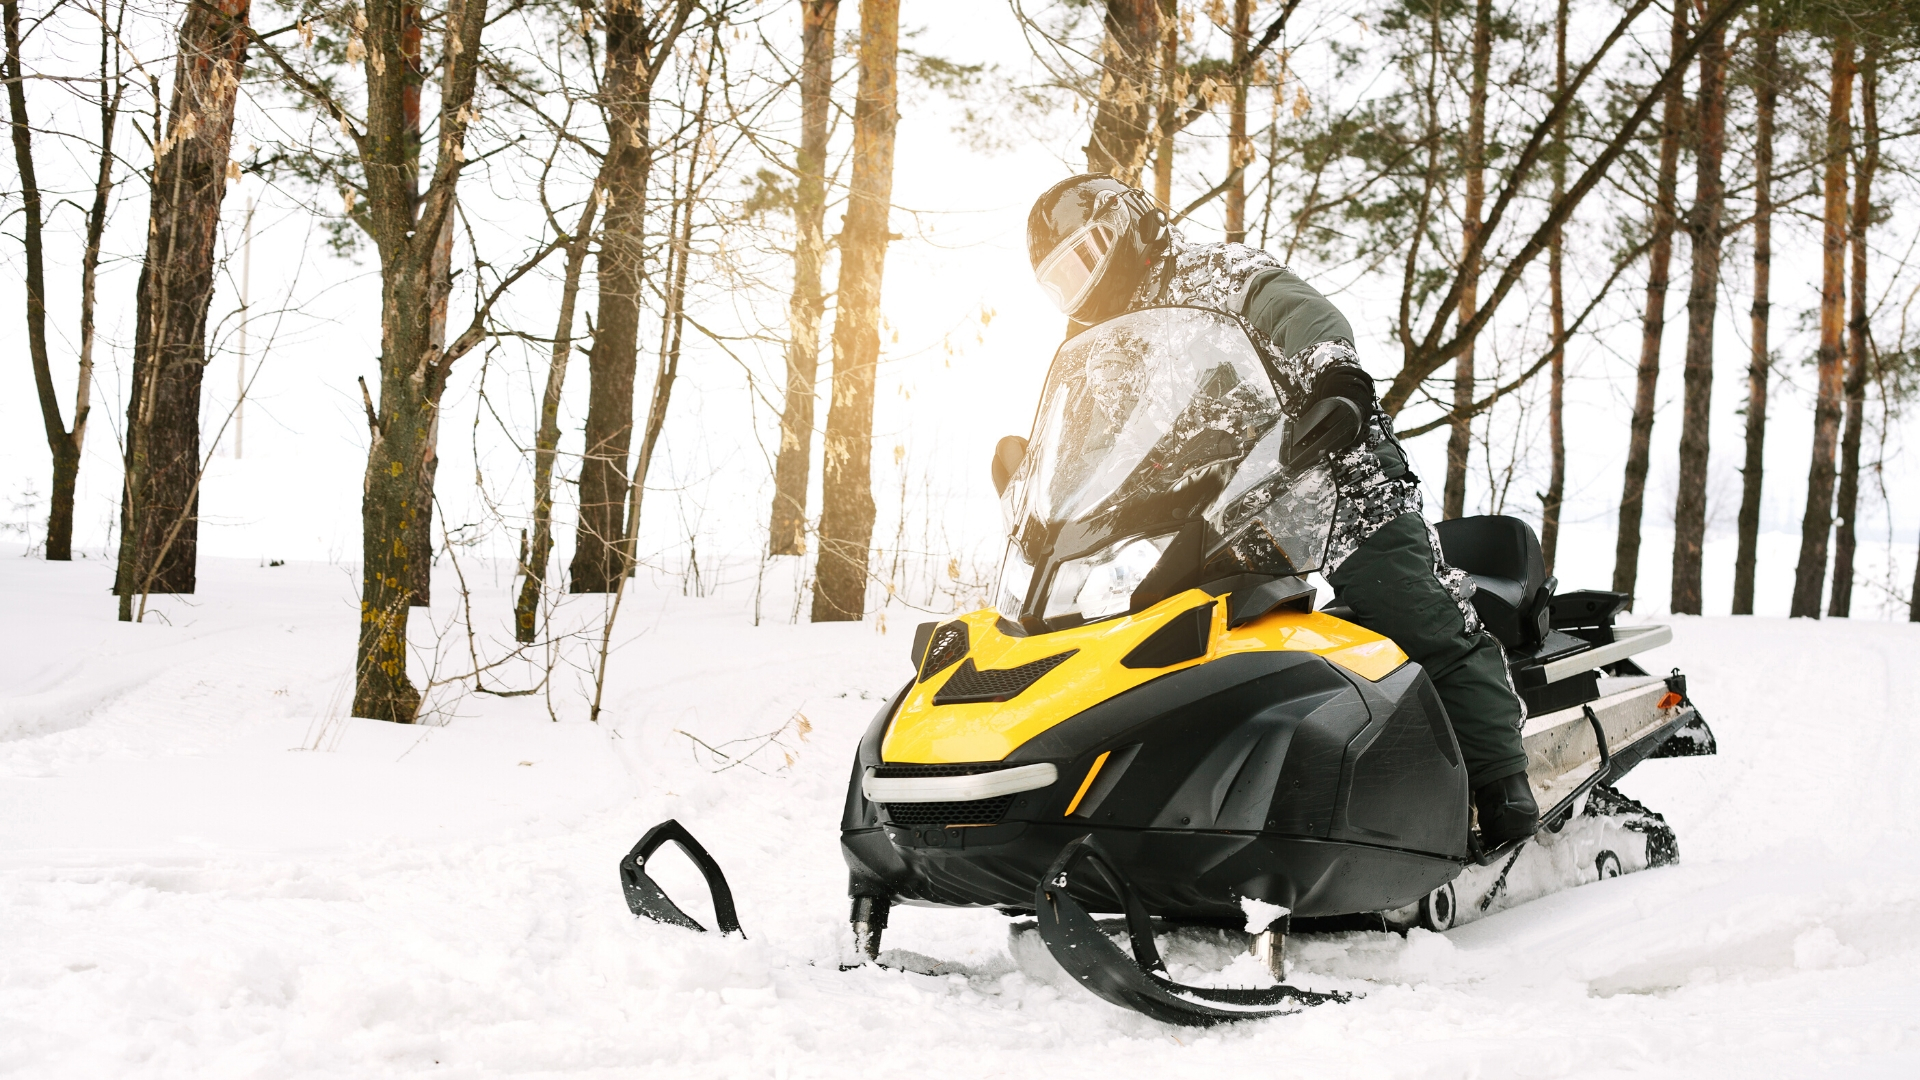 Snowmobiles images